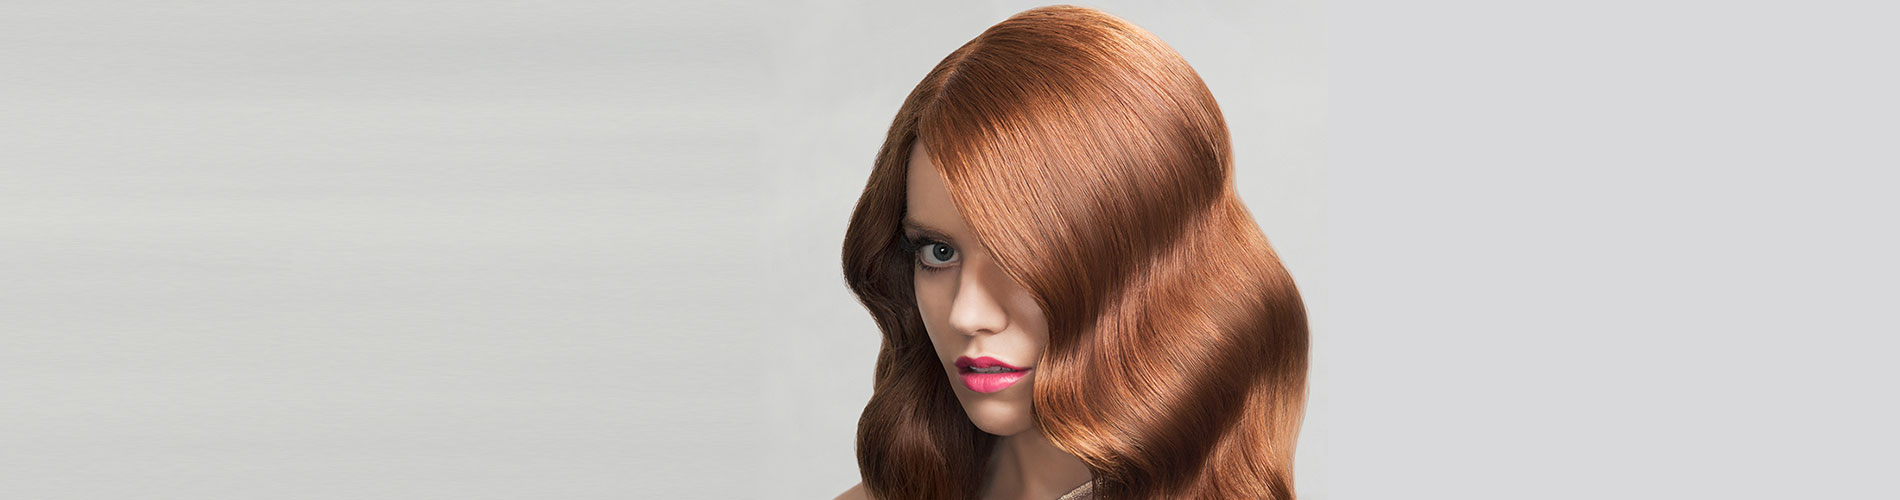 rpr mycolour model with healthy red hair